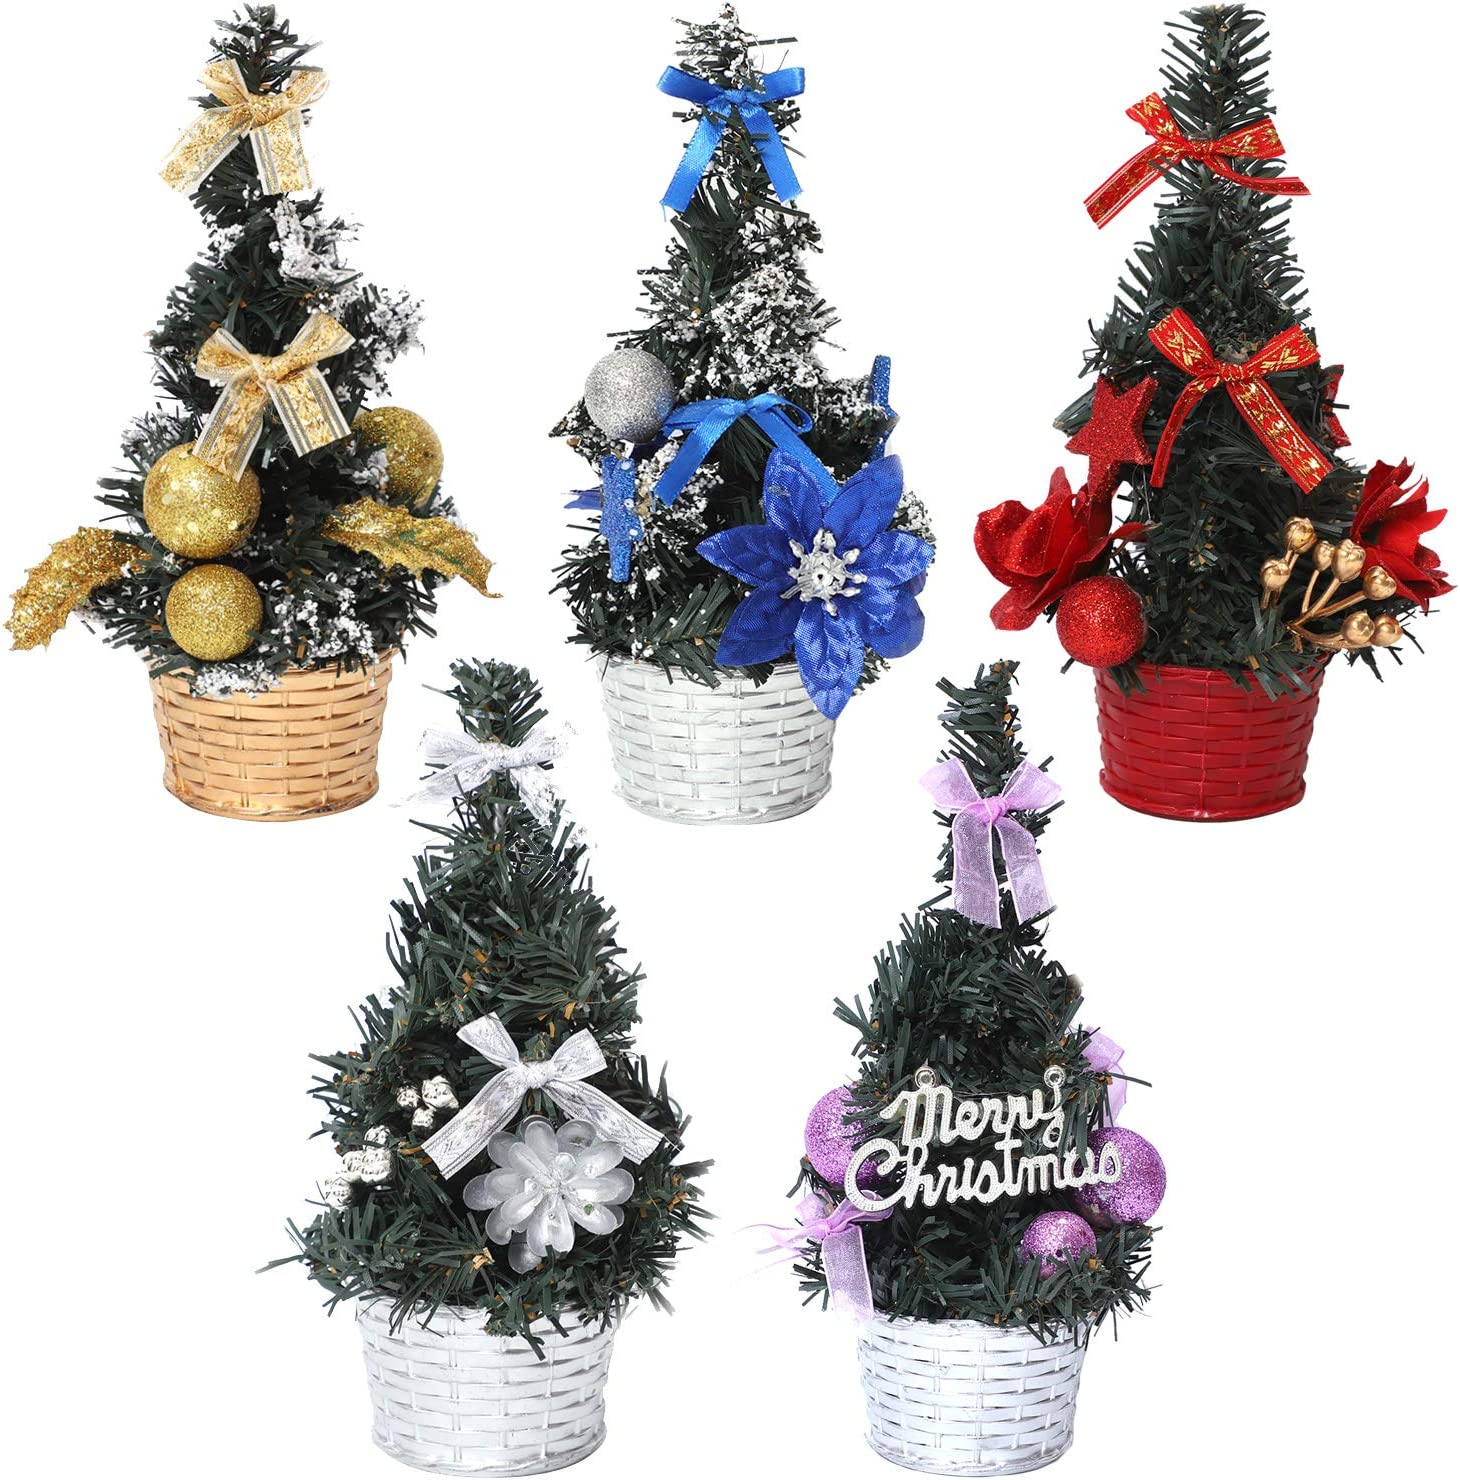 Aneco 5 Pack Tabletop Christmas Tree Office Desk Tree Small Christmas Tree for Christmas Decoration Office Ornament Gift